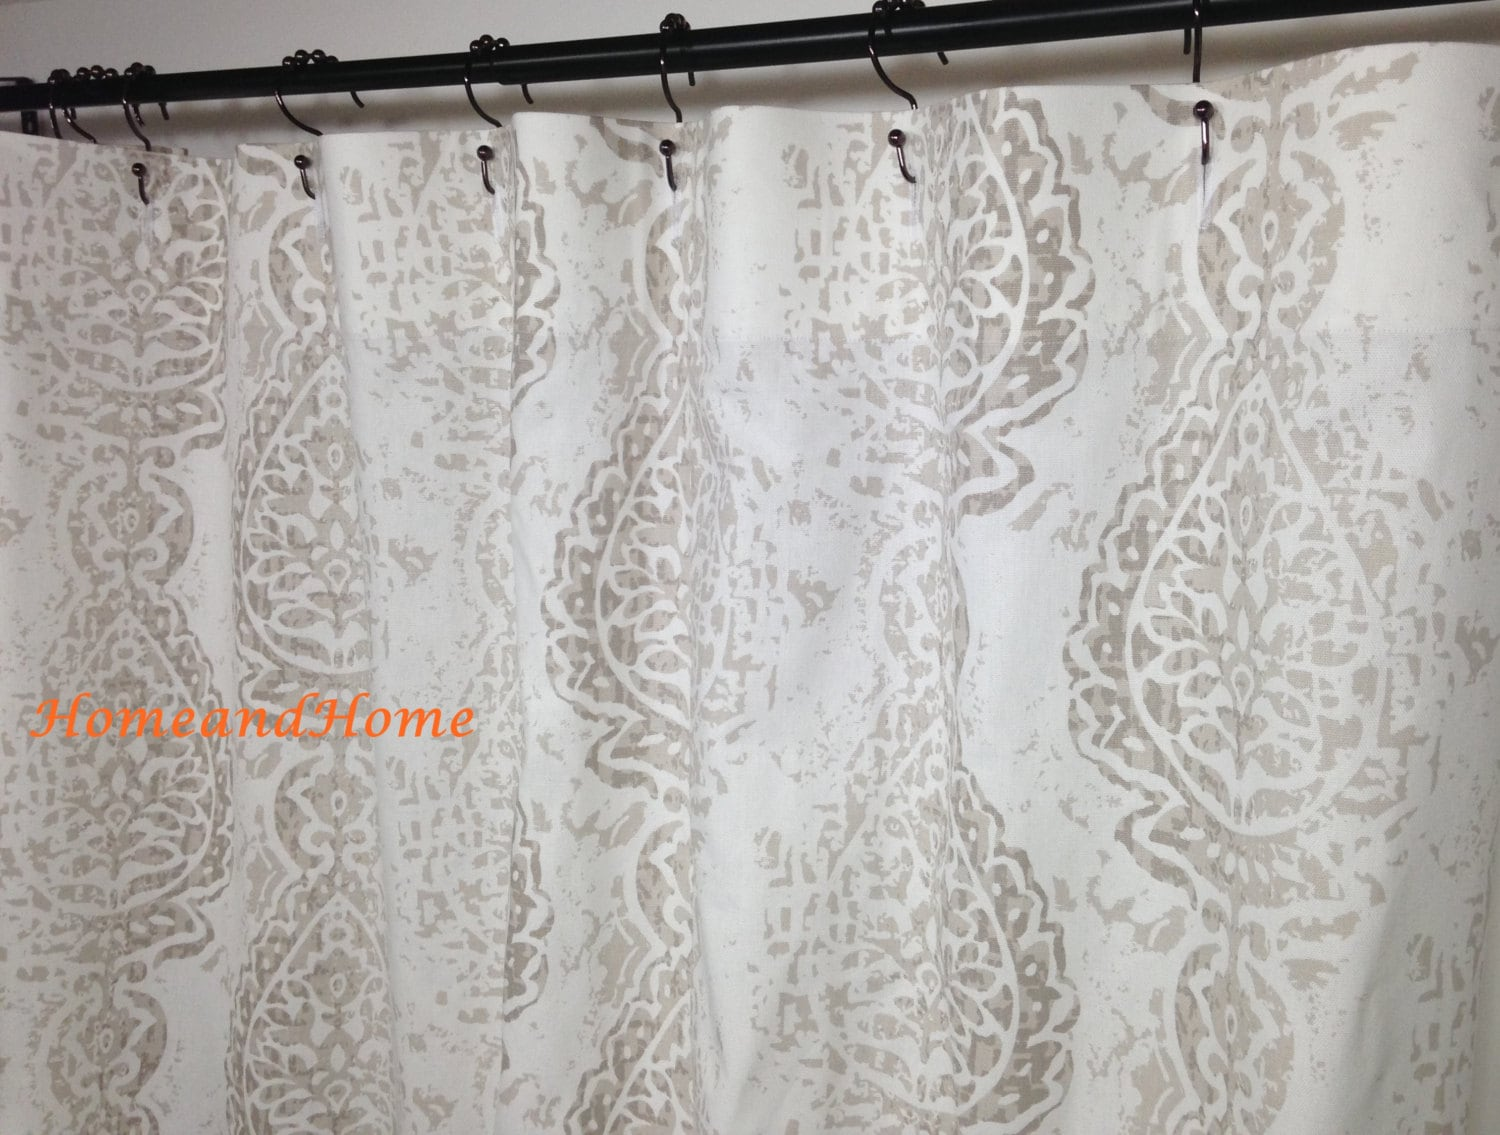 shower curtain fabric shower curtain ecru white 72 x 84 96 108 etsy. Black Bedroom Furniture Sets. Home Design Ideas